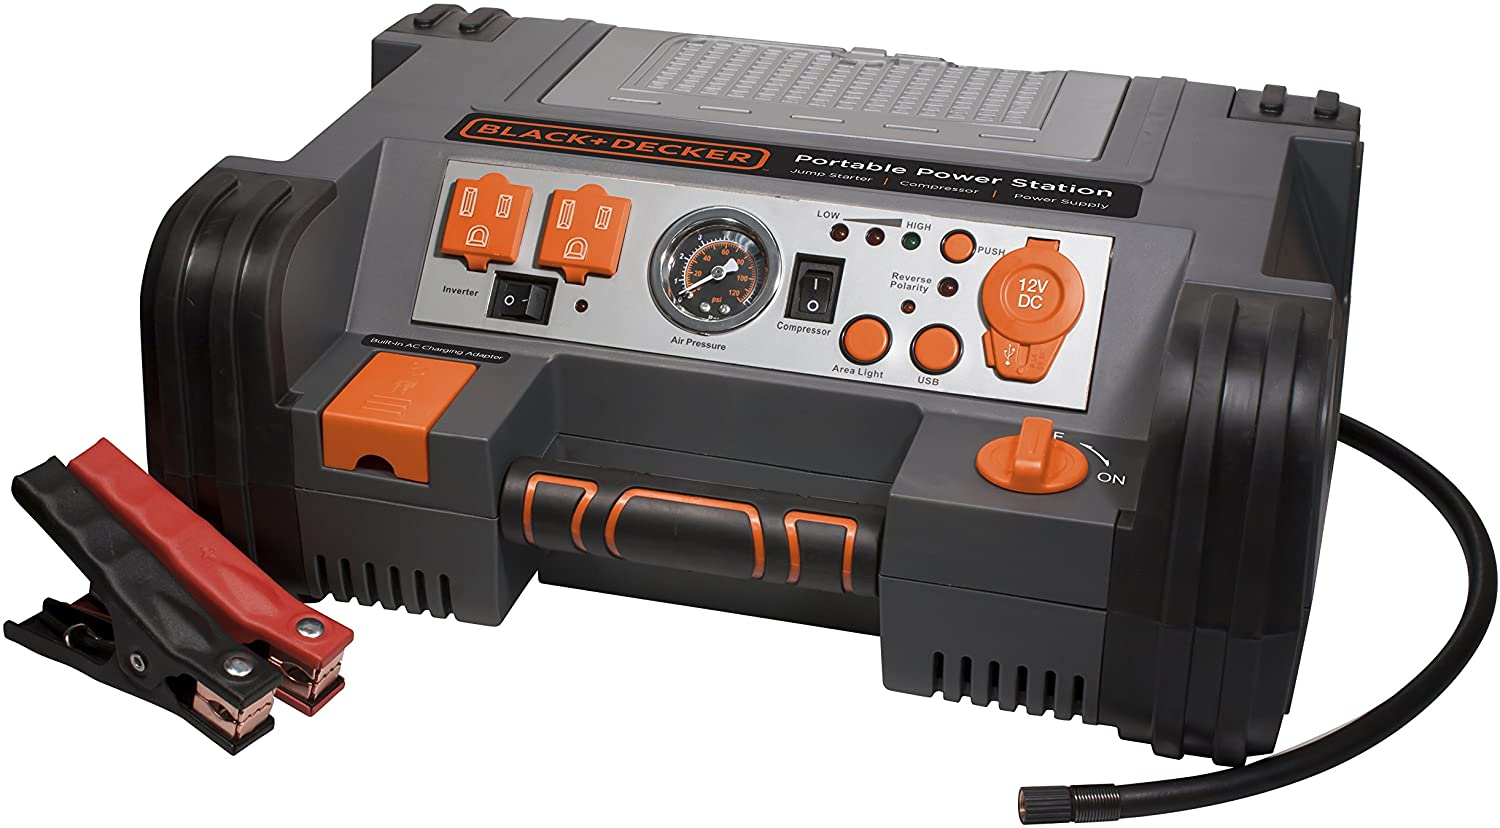 BLACK+DECKER PPRH5B 1000 Peak Amp Professional Power Station with 120psi Air Compressor Review